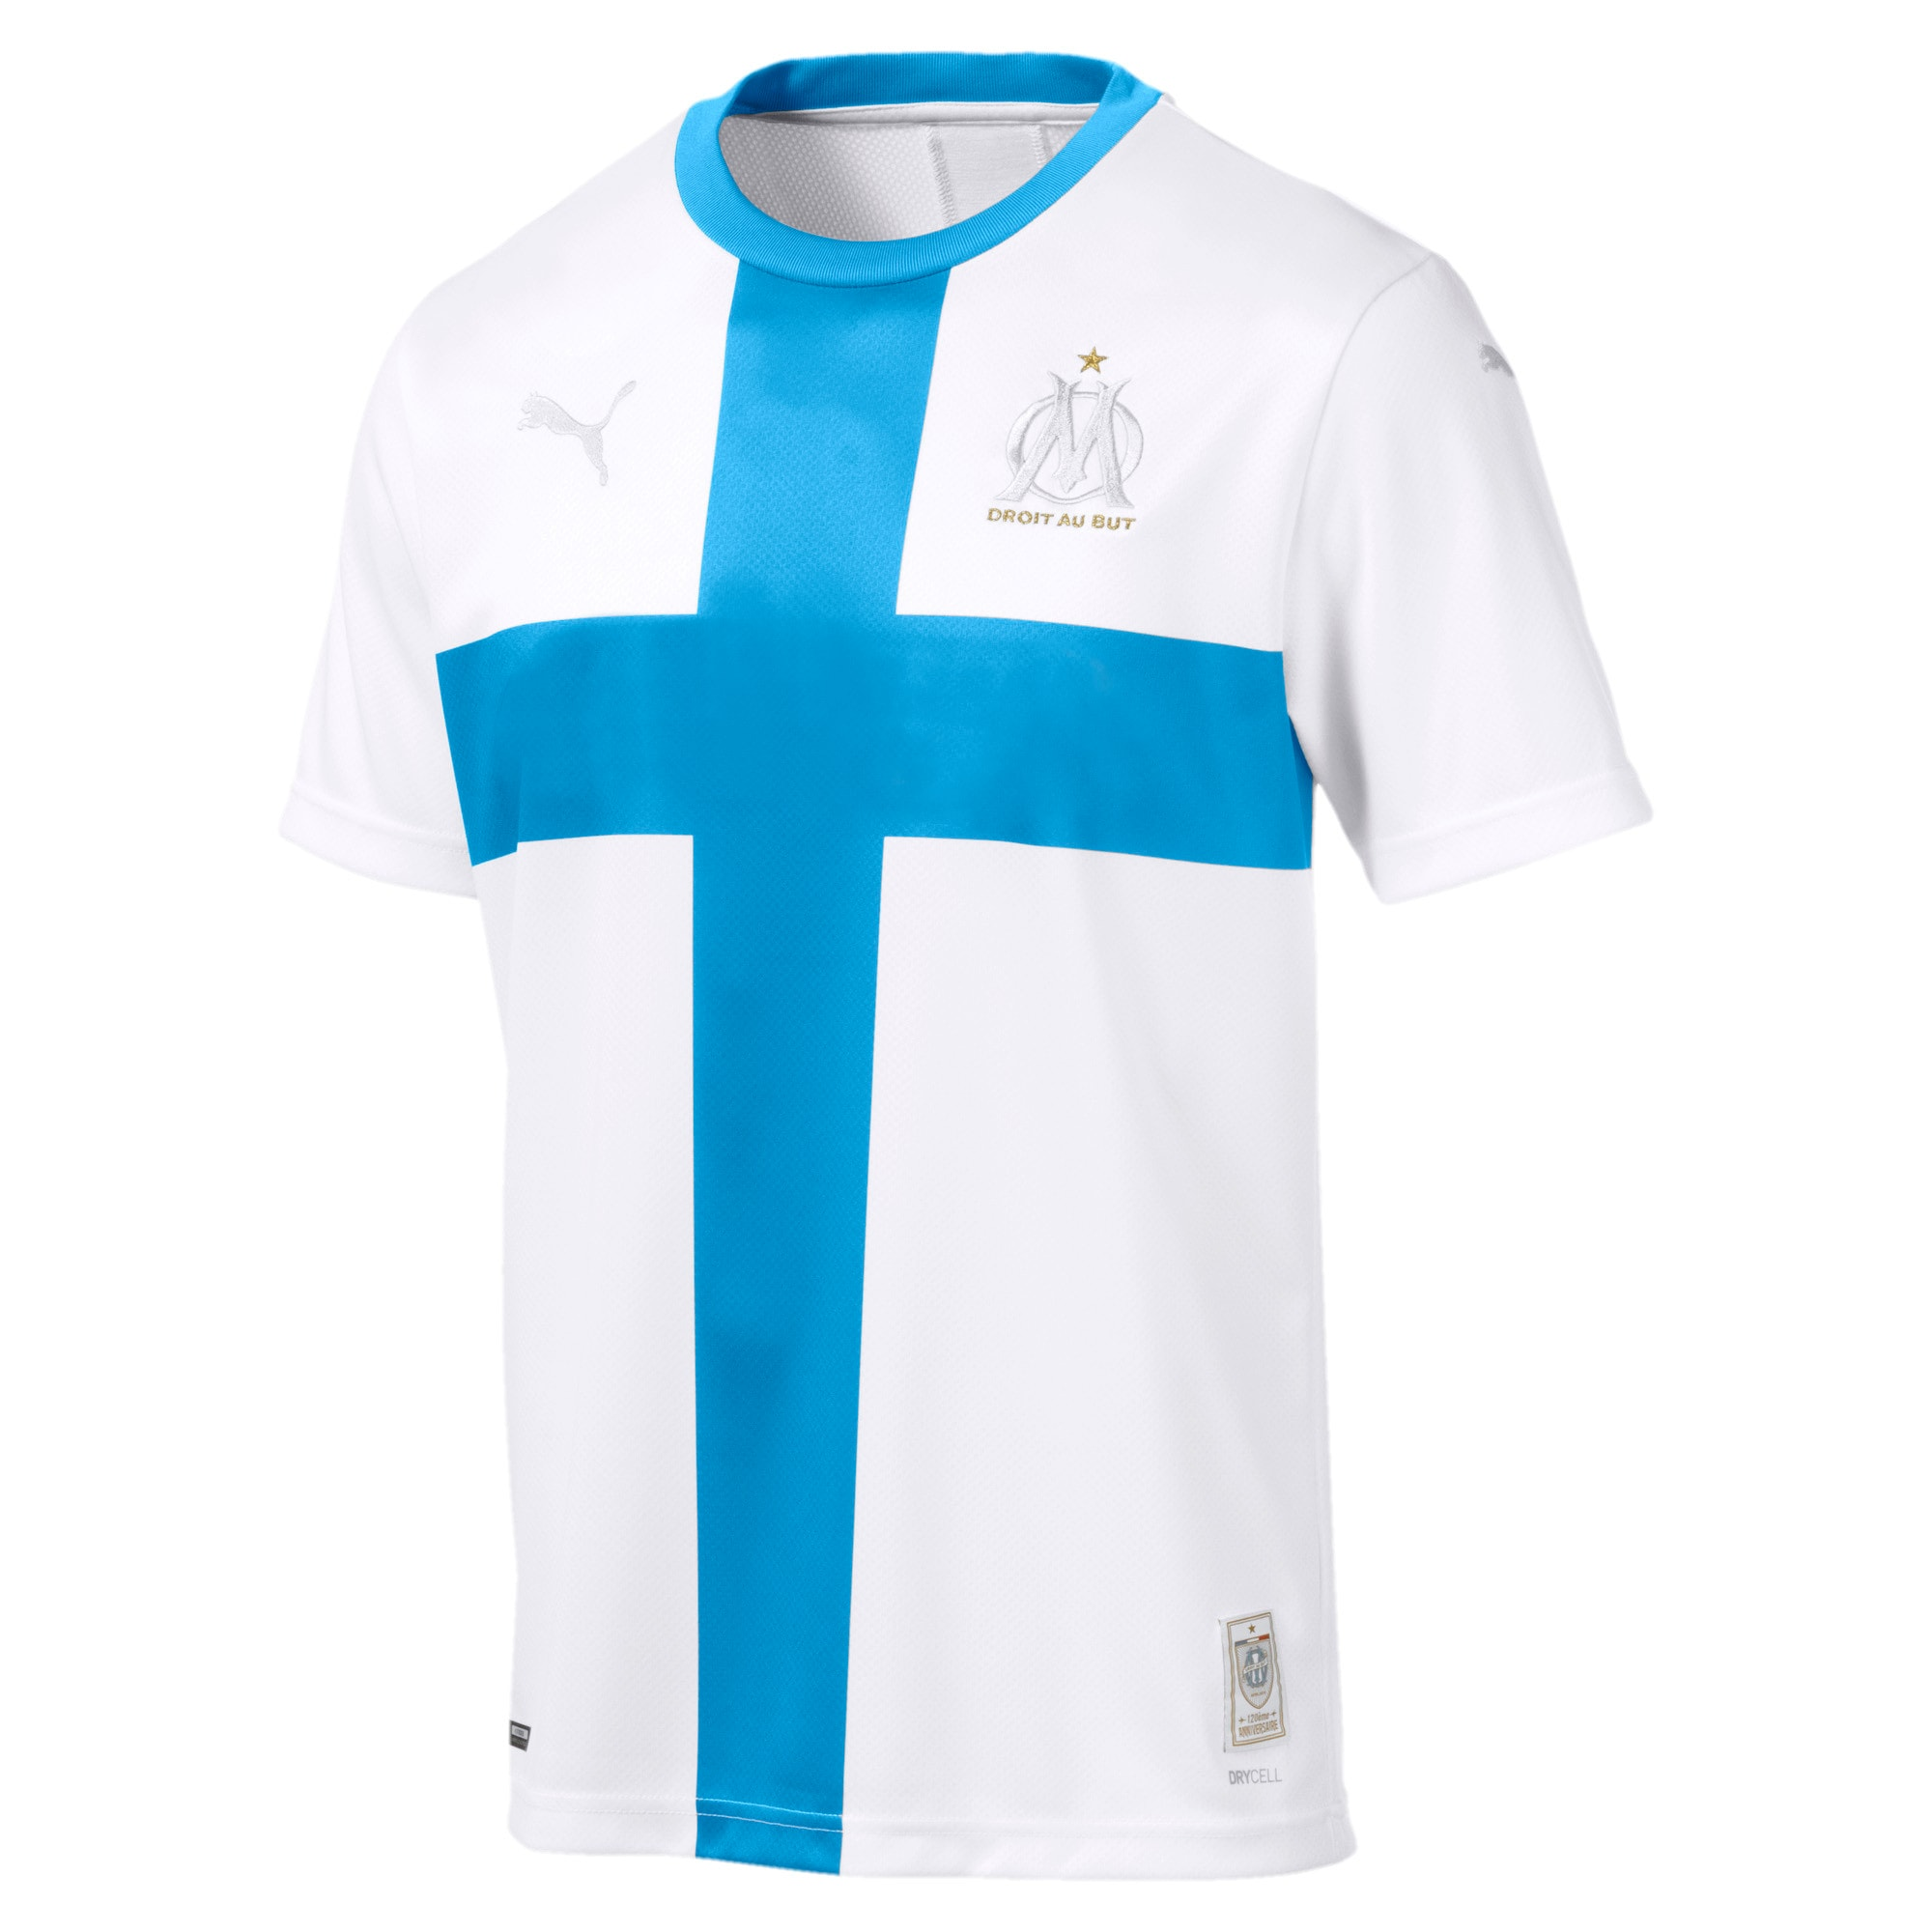 Thumbnail 1 of Olympique de Marseille 120th Anniversary Short Sleeve Men's Replica Jersey, Puma White-Bleu Azur, medium